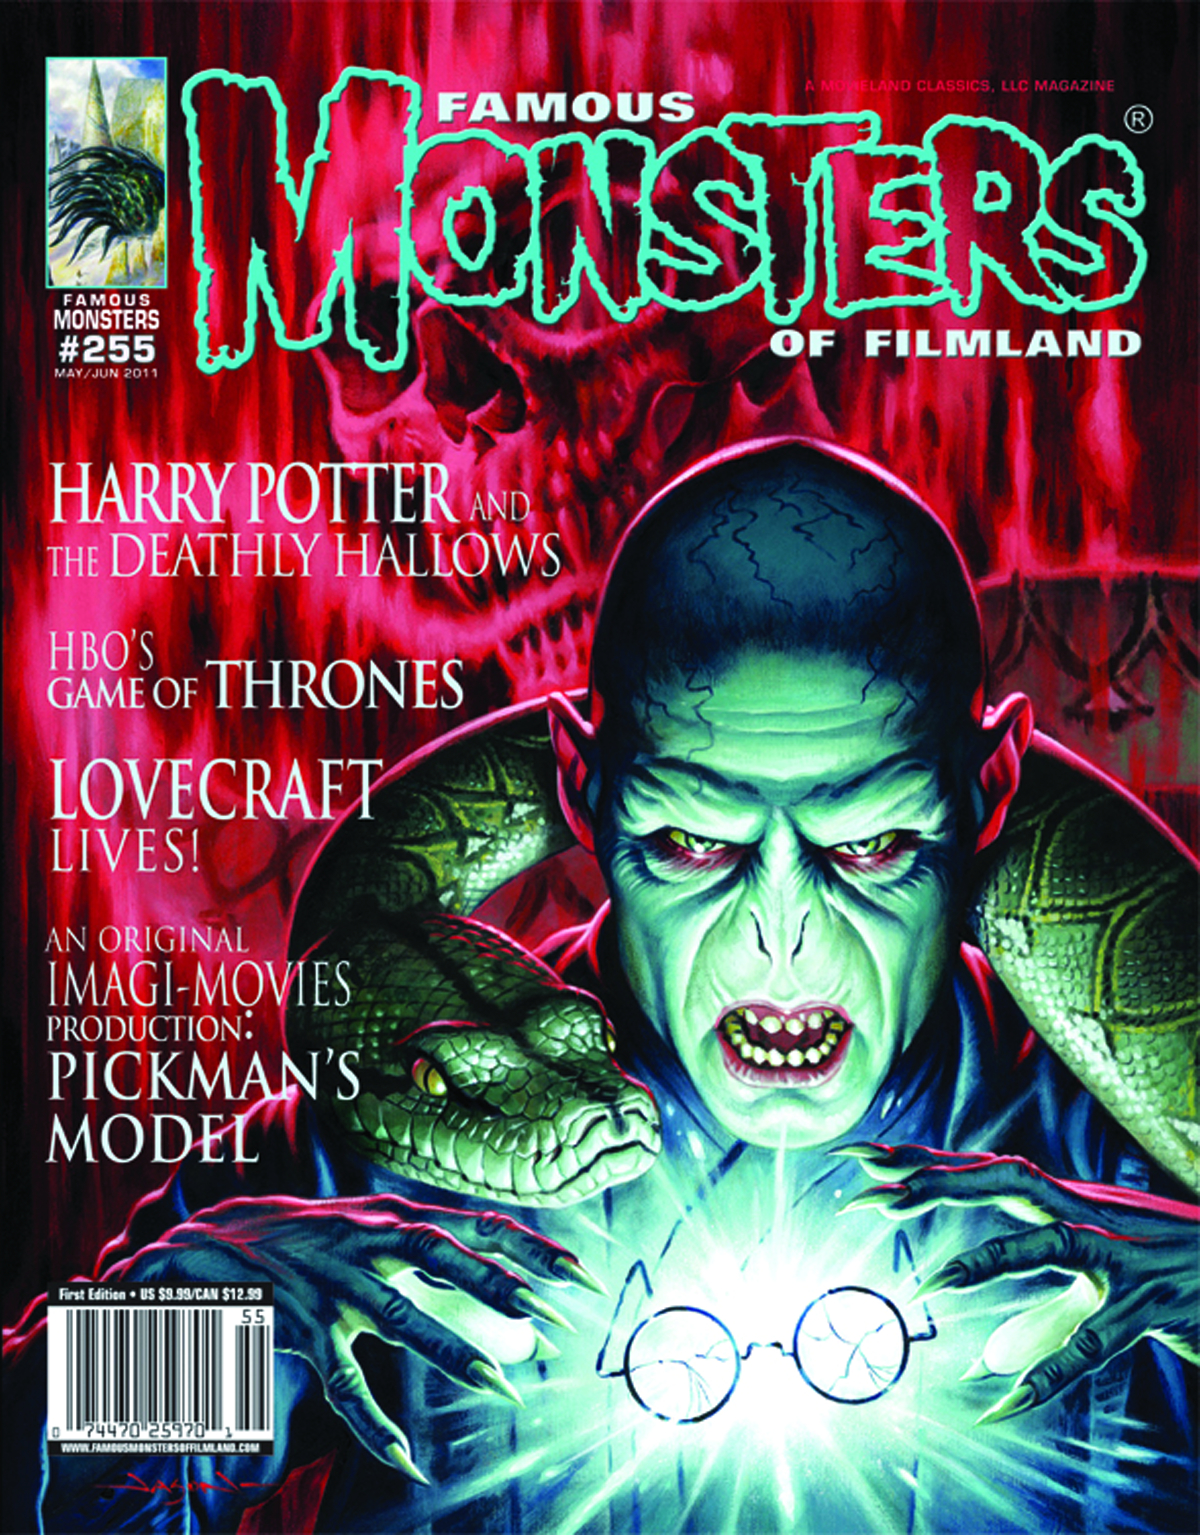 FAMOUS MONSTERS OF FILMLAND #255 DEATHLY HALLOWS CVR